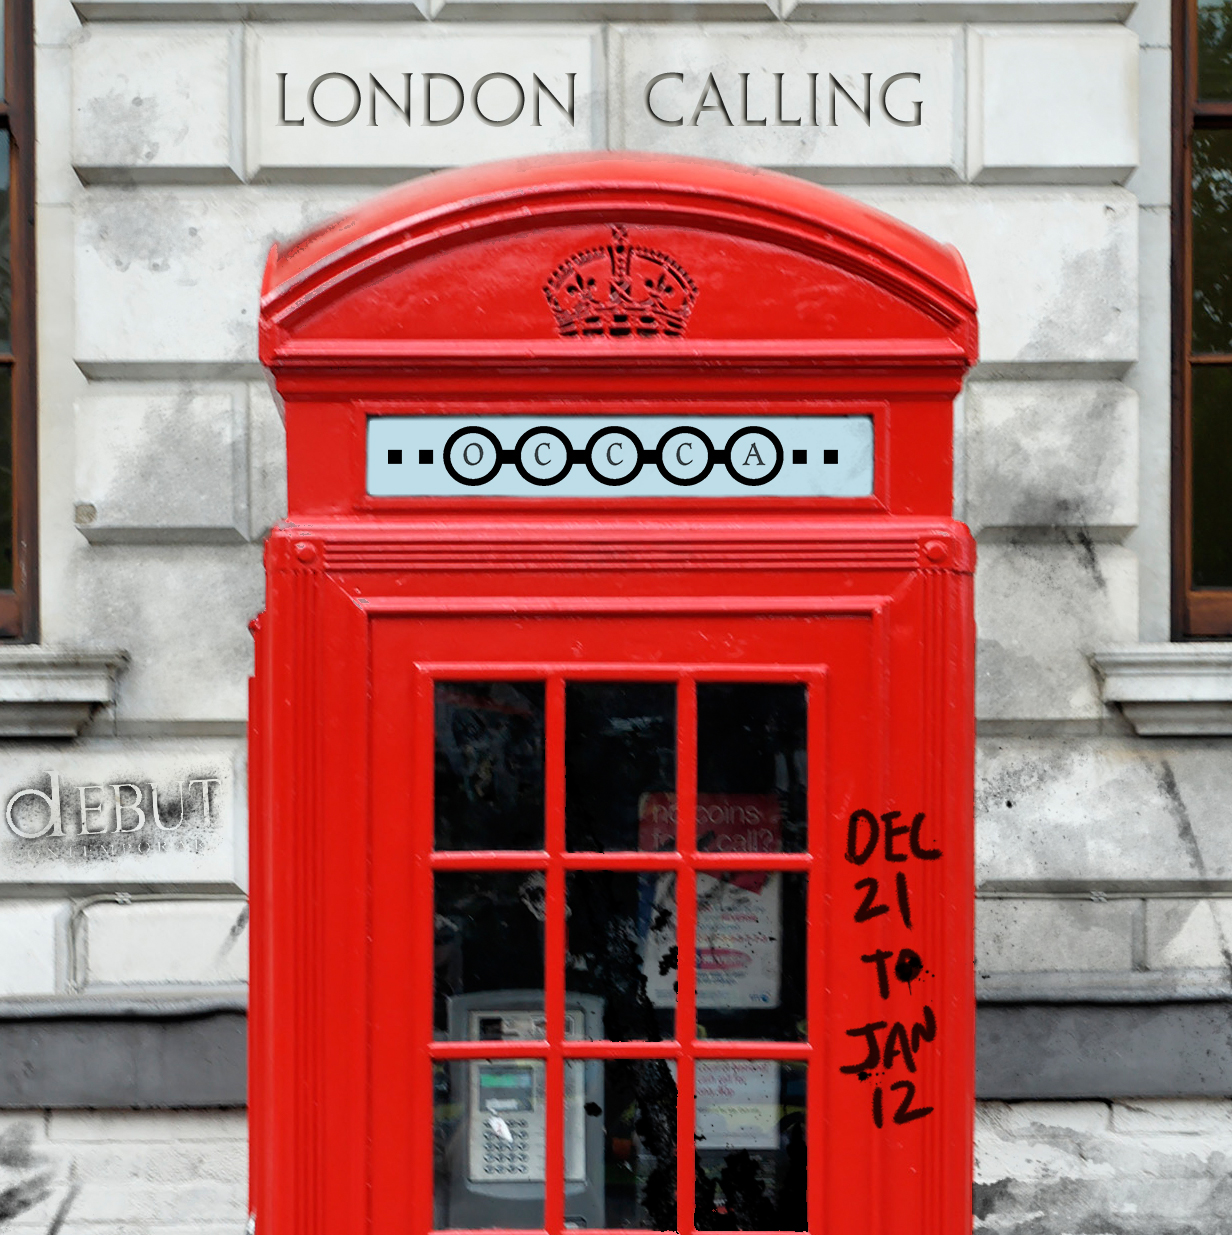 london20calling20phone20booth1